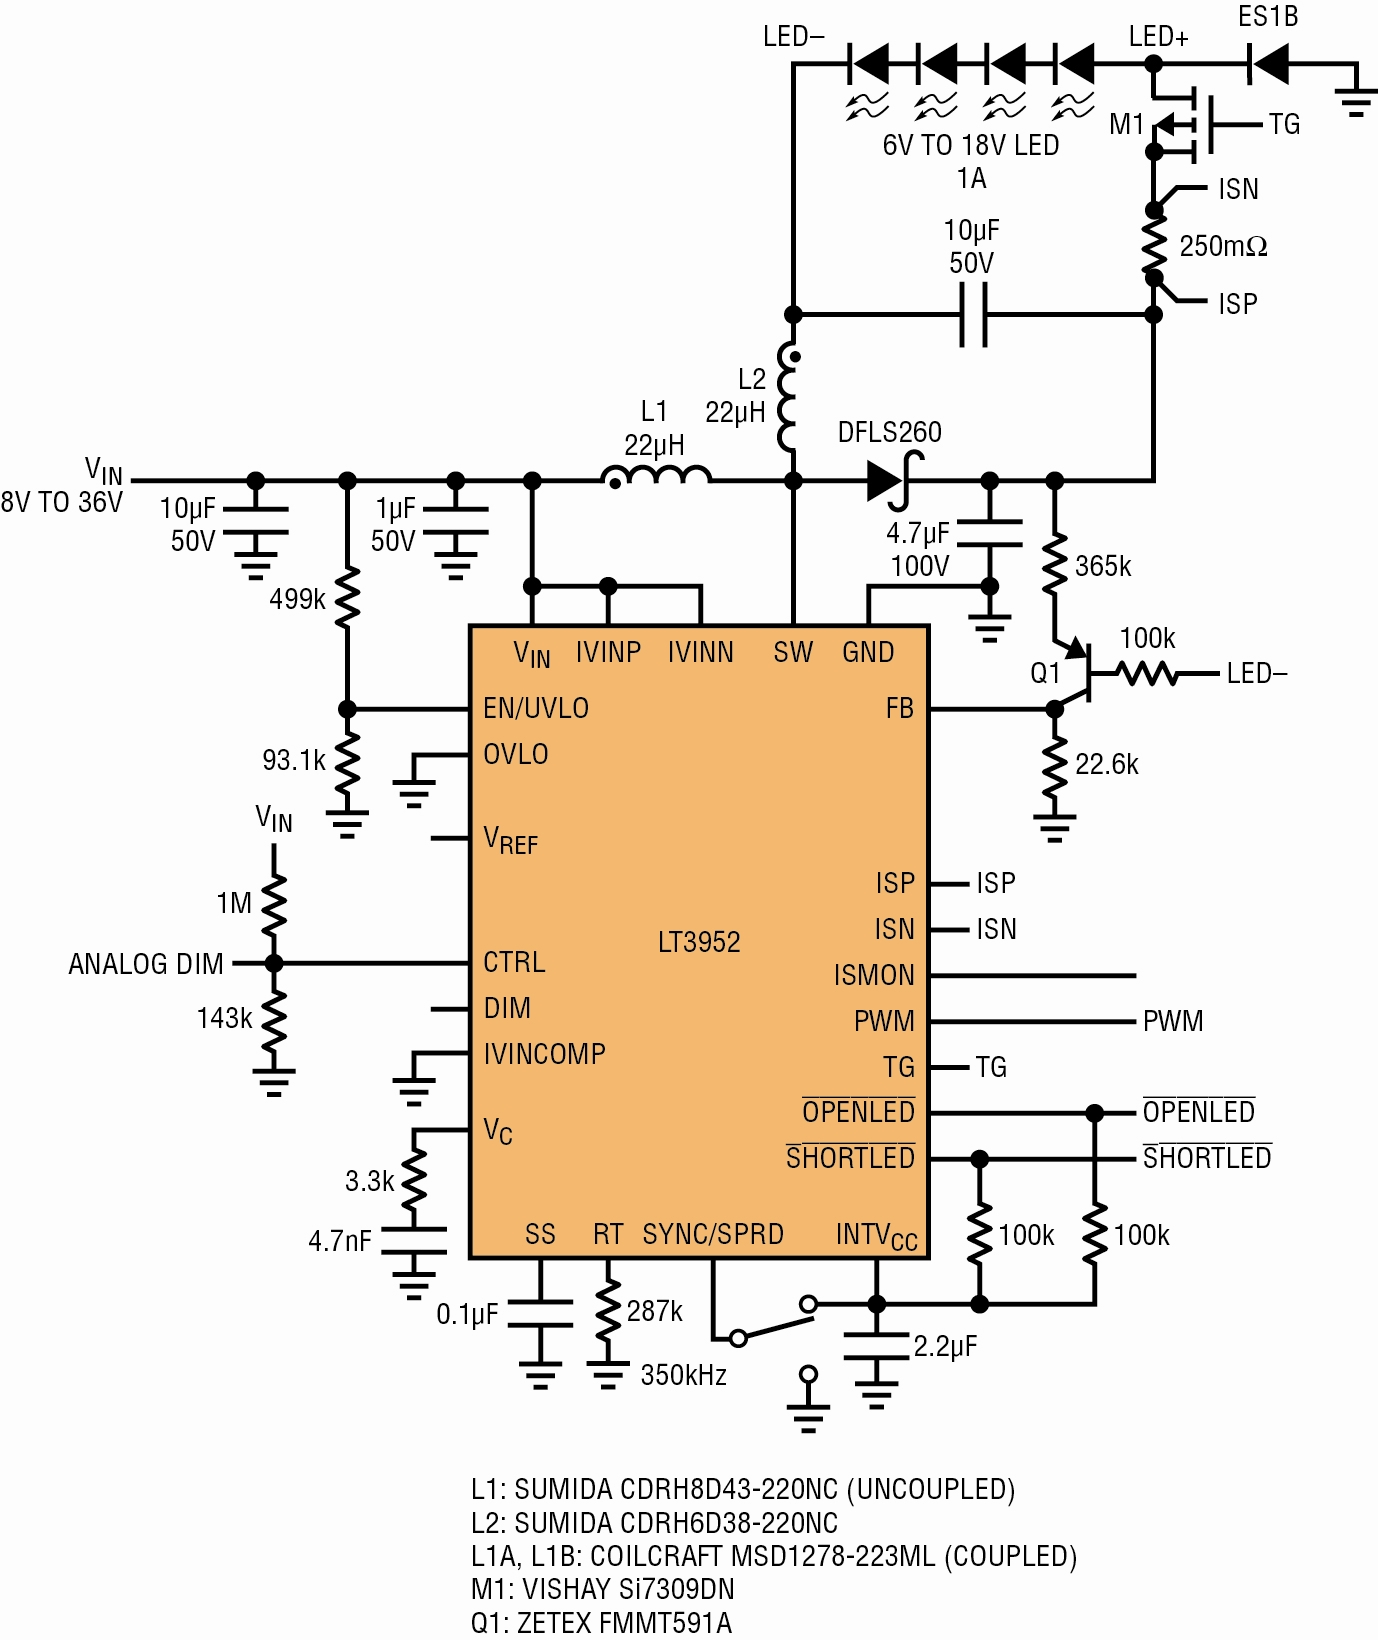 Buck-boost LED driver topology is designed for low EMI